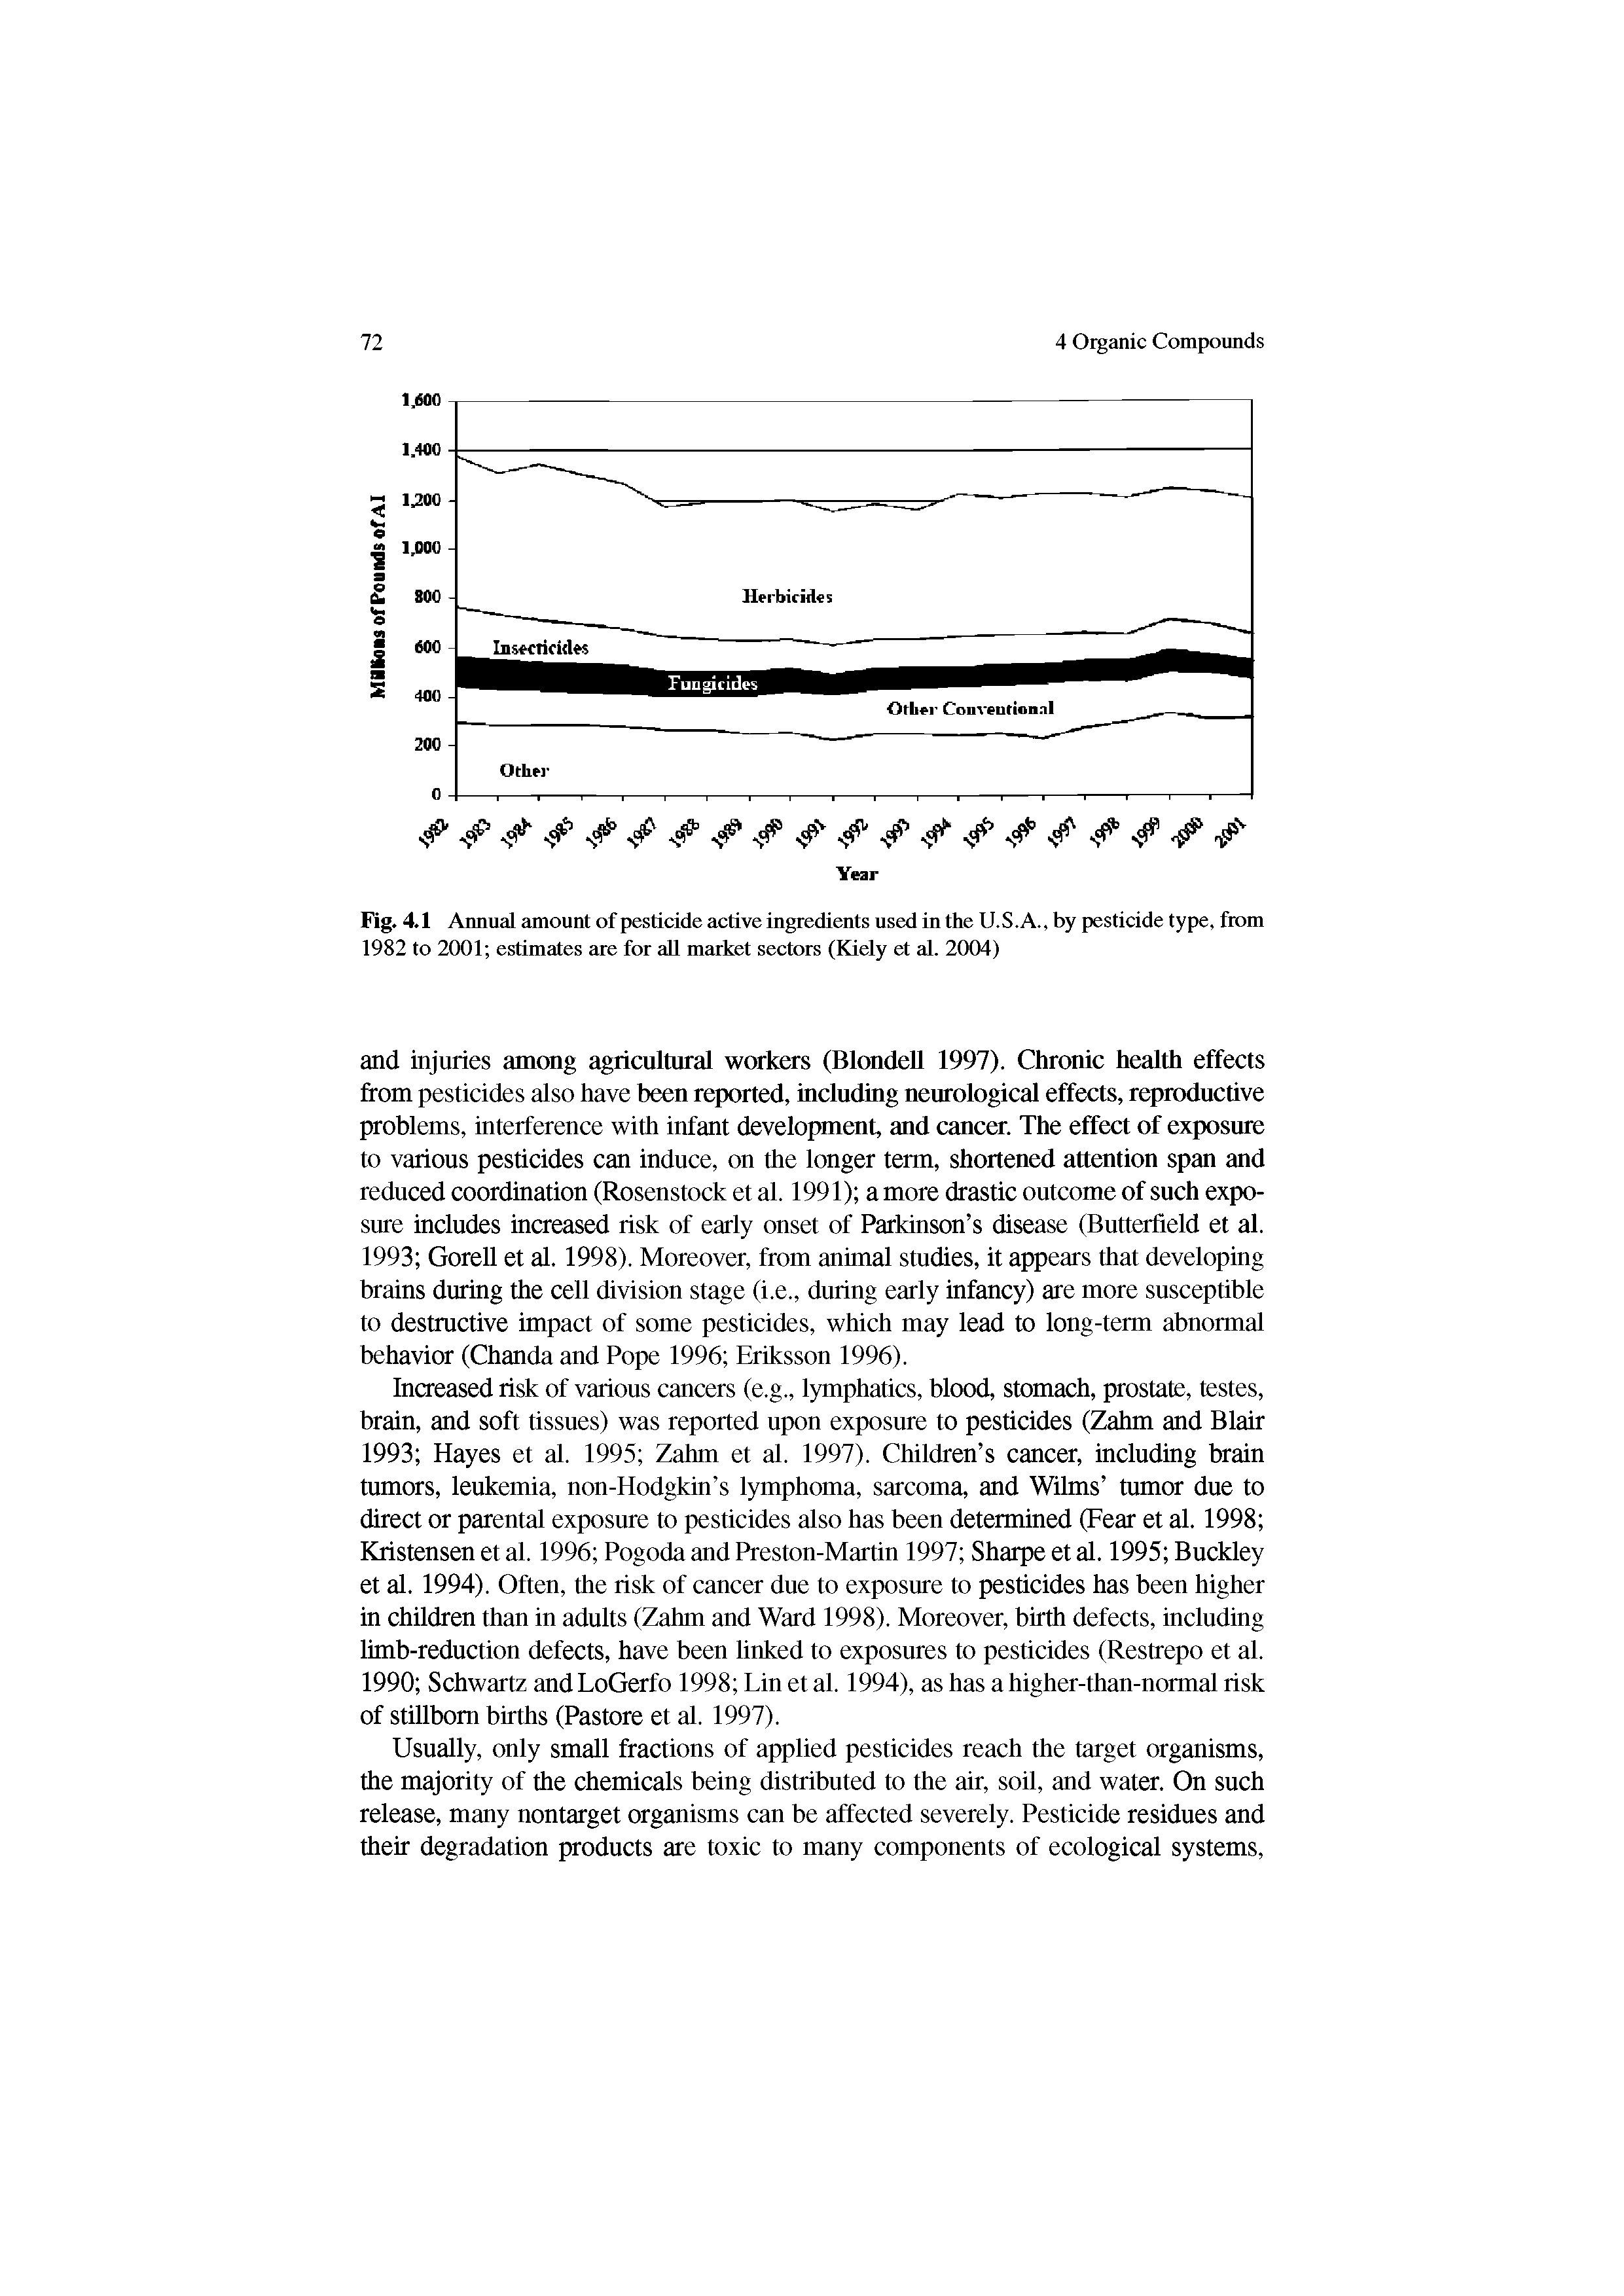 Fig. 4.1 Annual amount of pesticide active ingredients used in the U.S.A., by pesticide type, from 1982 to 2001 estimates are for aU market sectors (Kiely et al. 2004)...